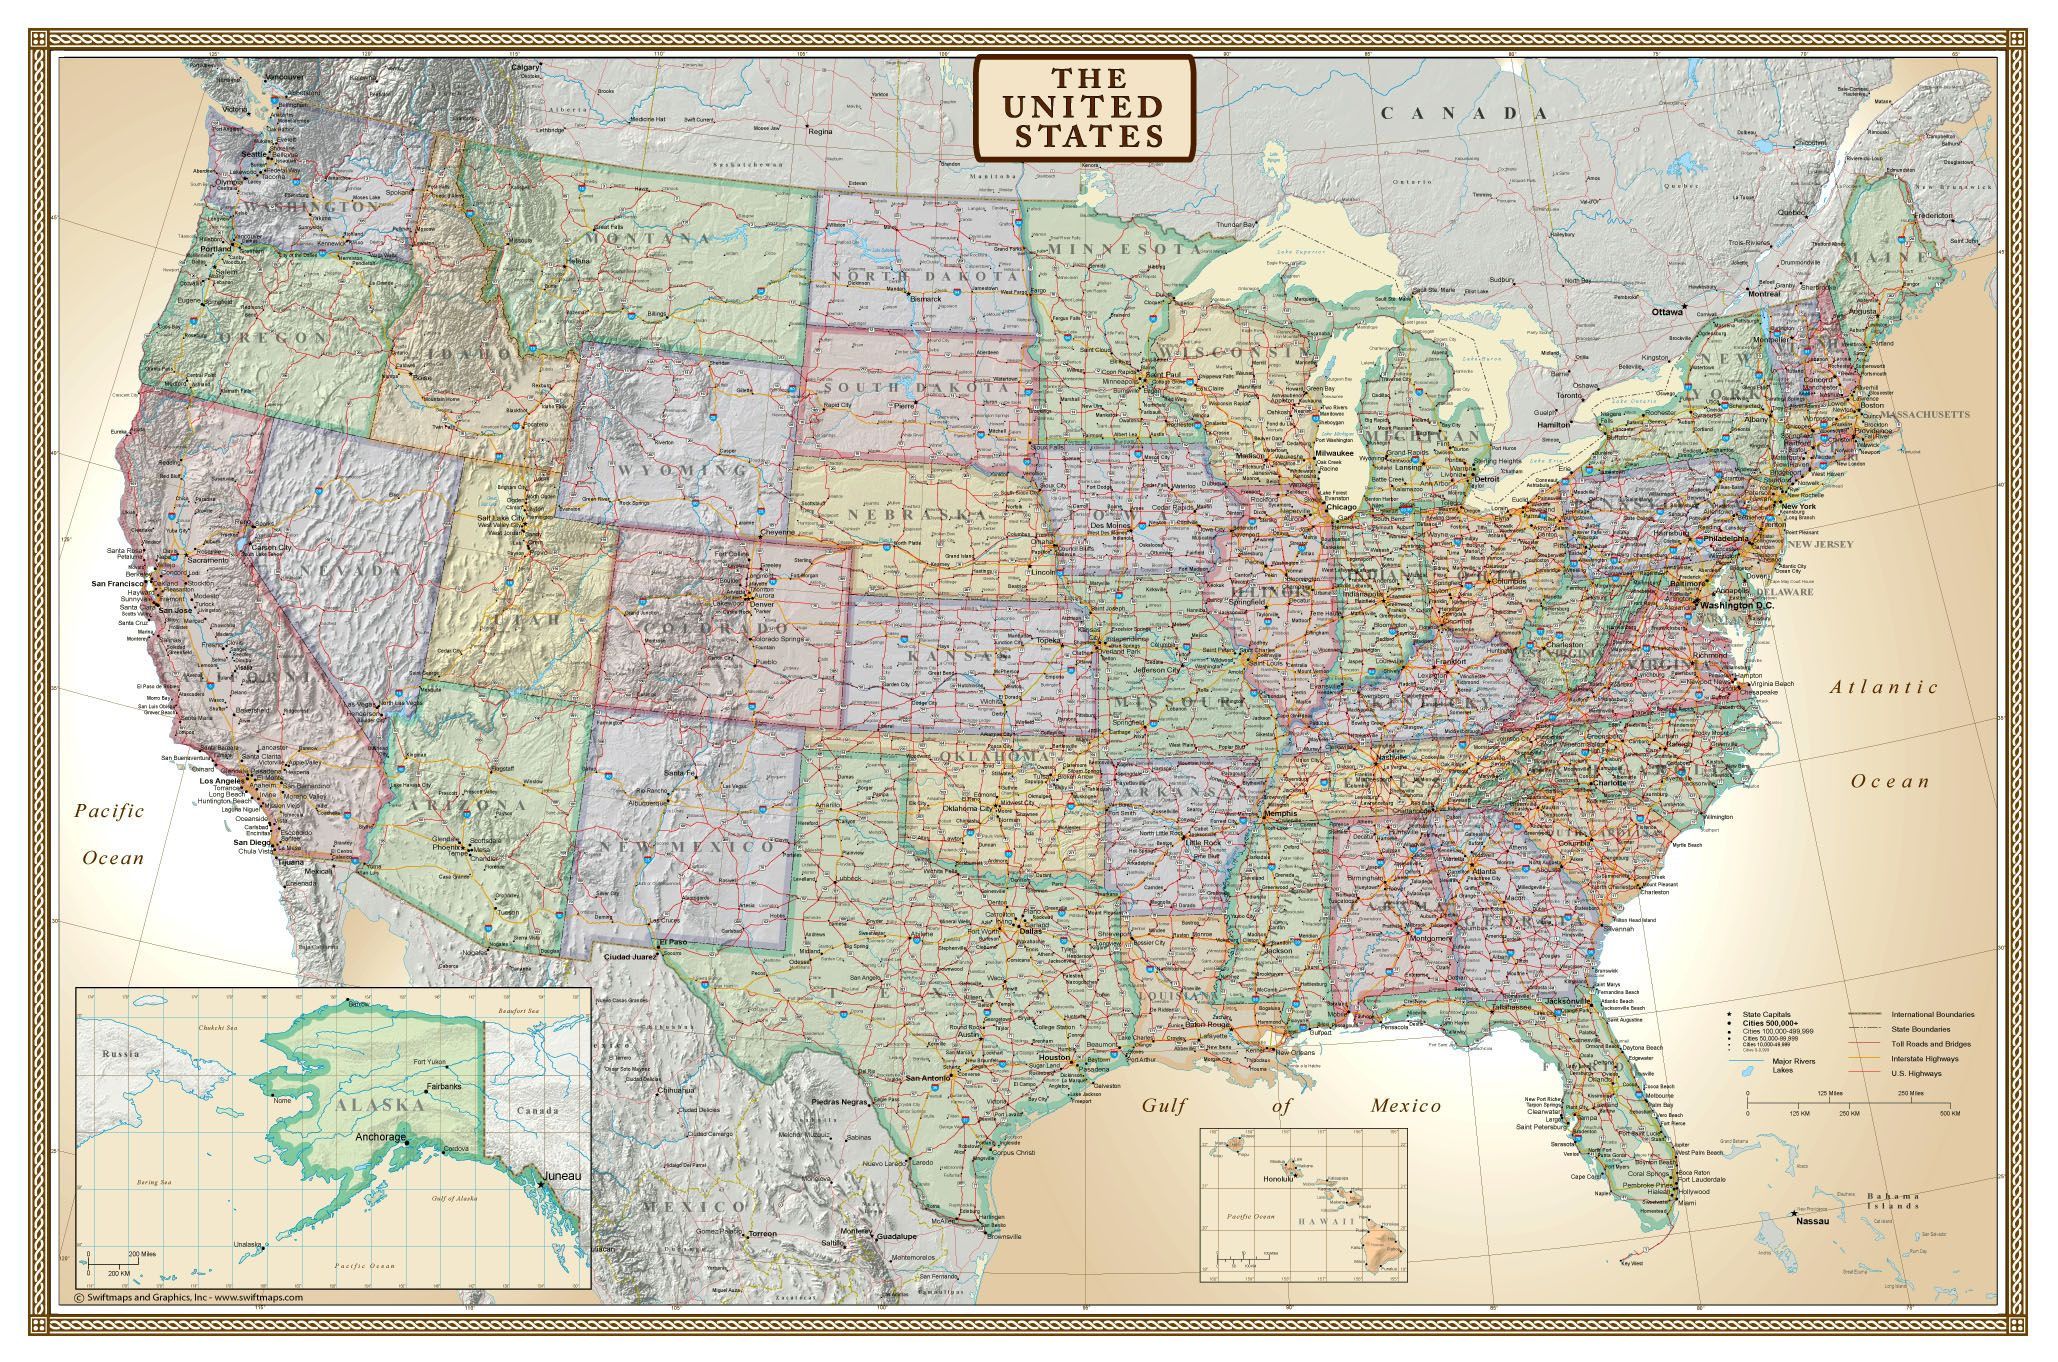 large united states wall map rolled usa map not folded usa map is printed on poster paper